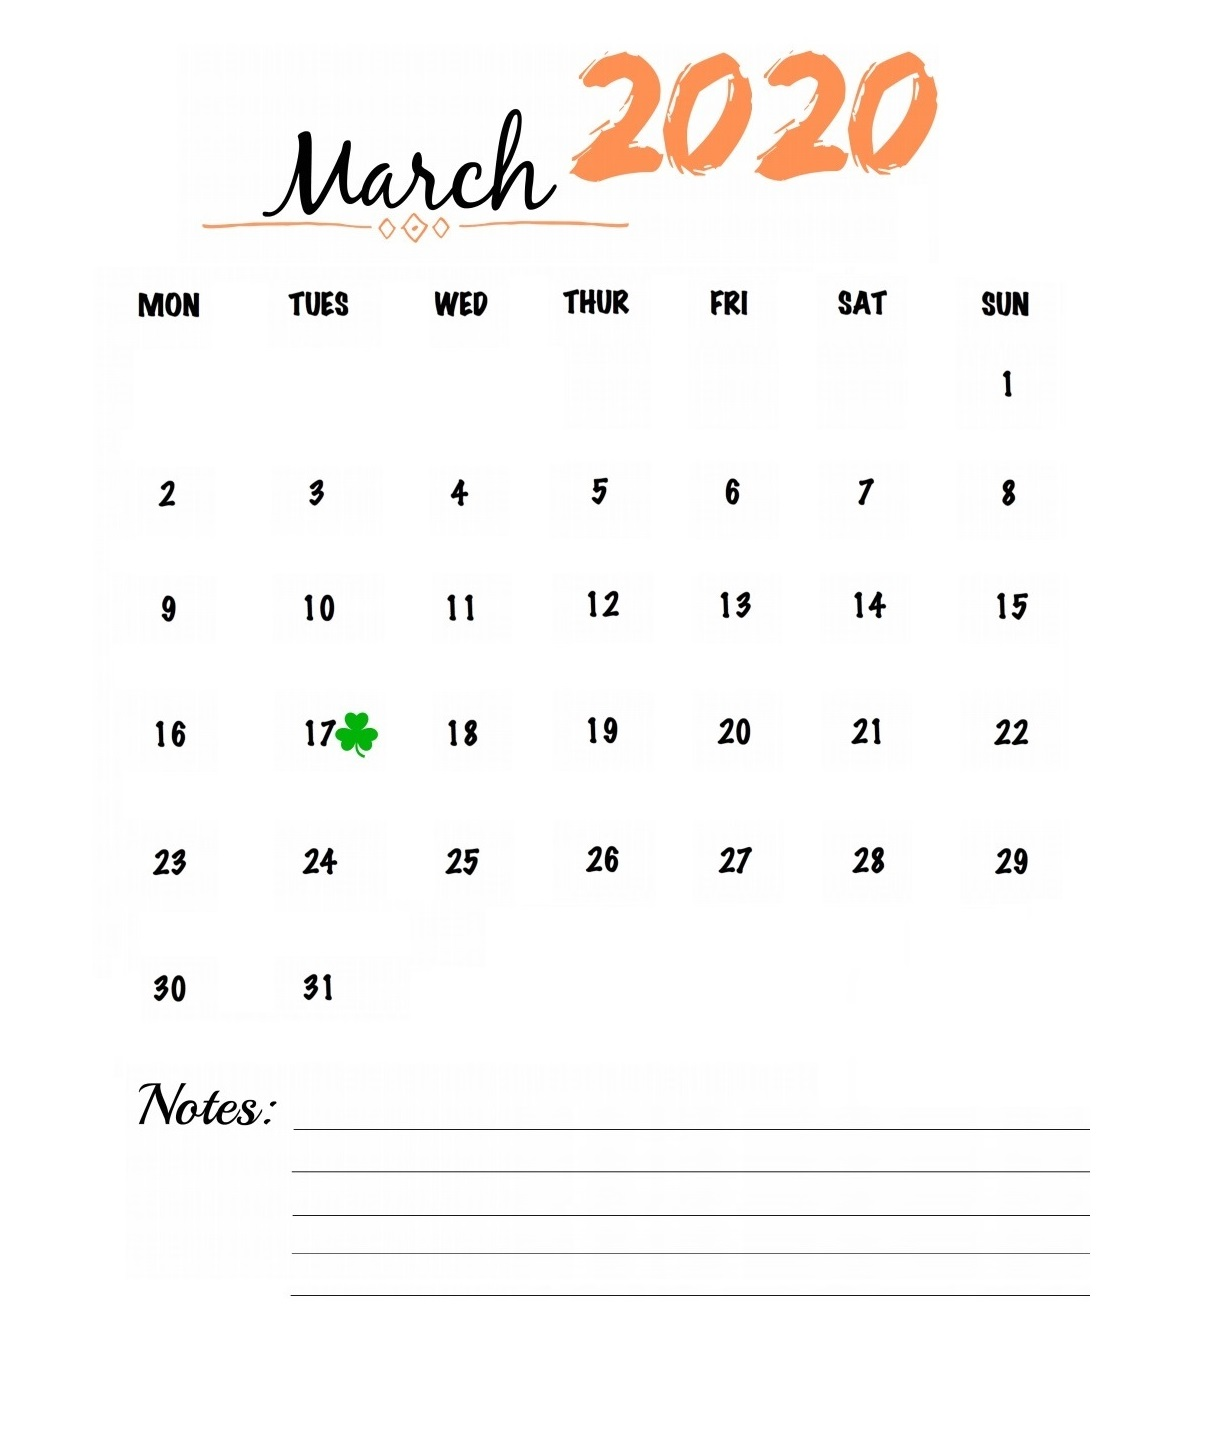 March 2020 Wall Calendar To Print